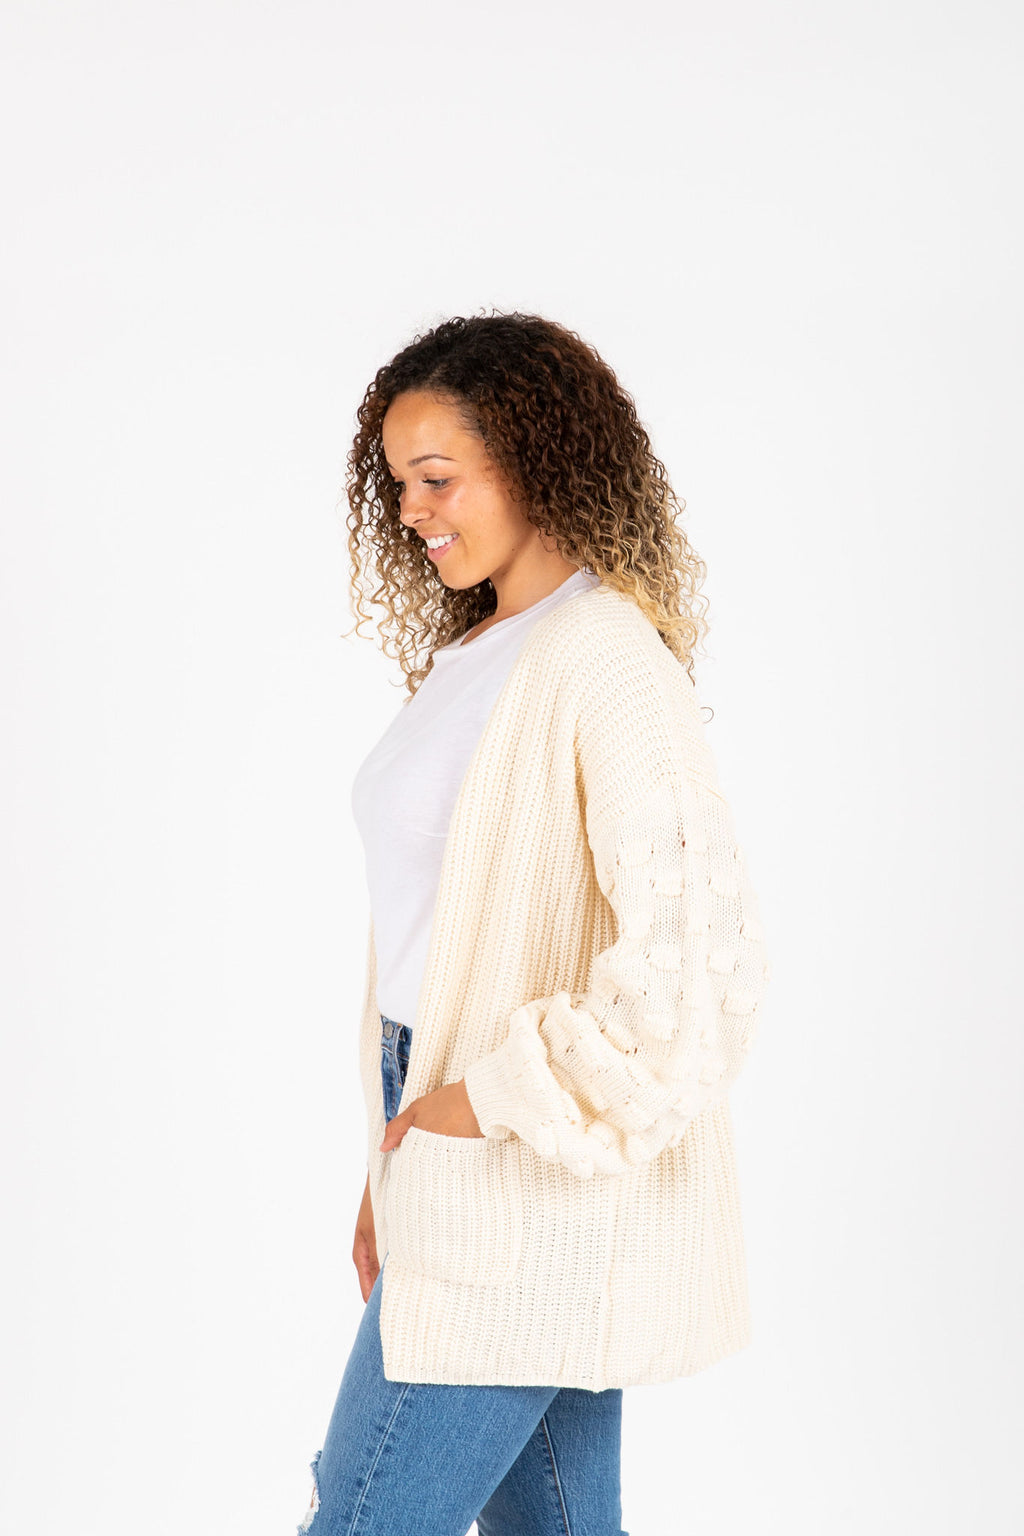 The Bellisario Crochet Detail Cardigan in Cream, studio shoot; side view